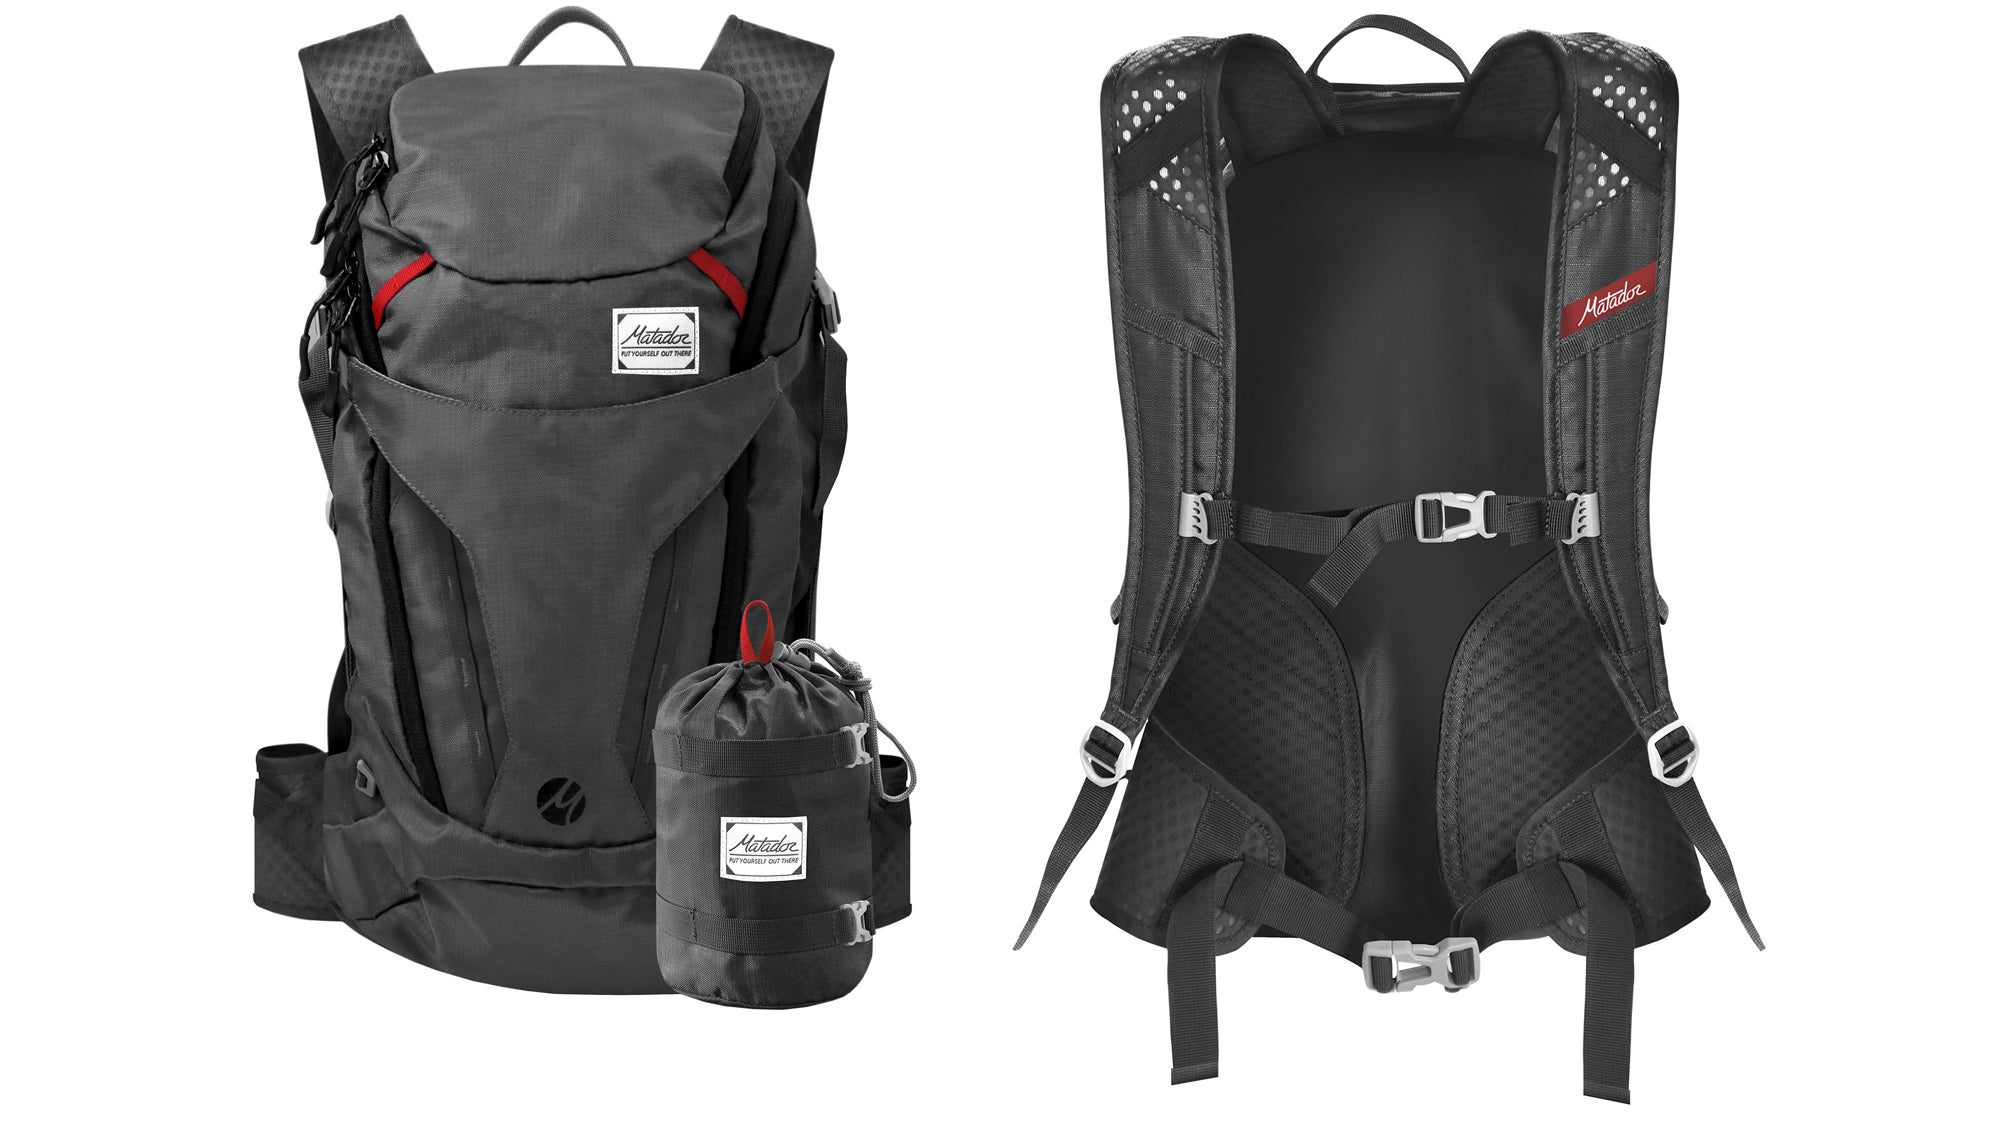 A Packable Adventure Backpack That Can Comfortably Carry Loads Of Weight